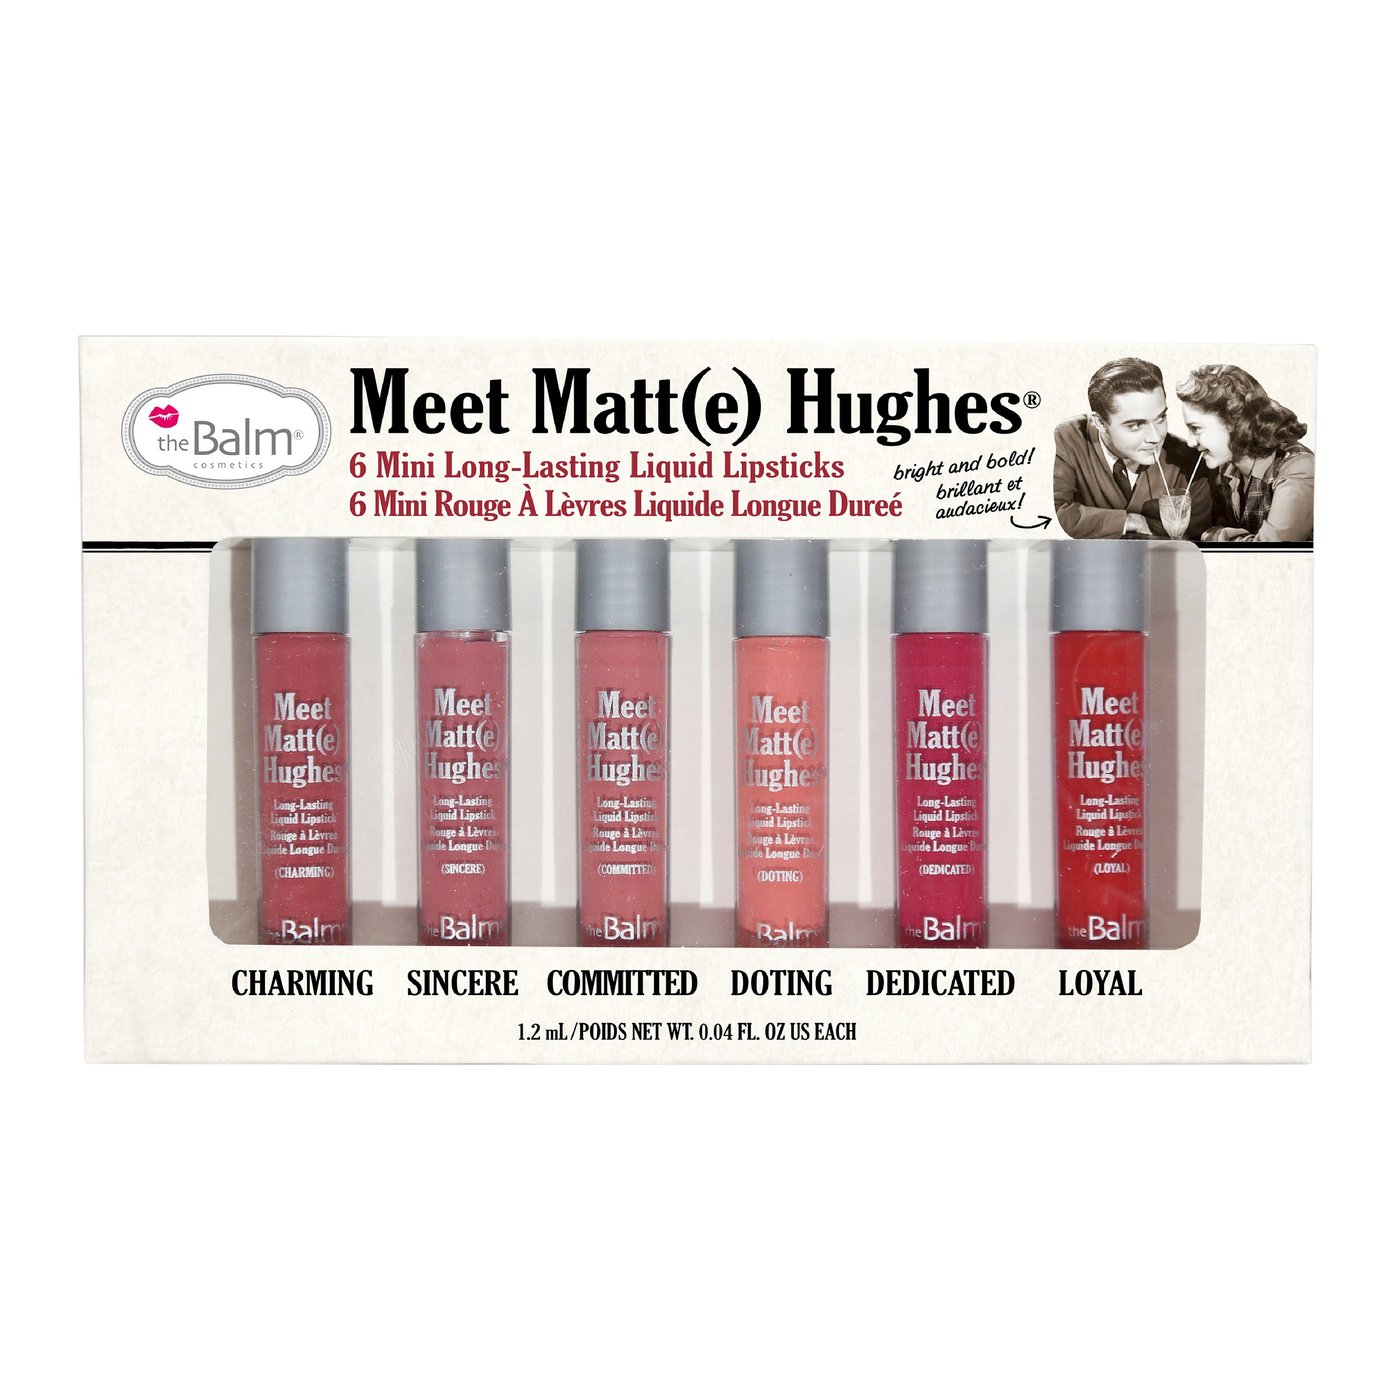 theBalm Meet Matte Hughes Lipsticks Kit - Vol 1 -  | Cosmetics Diary